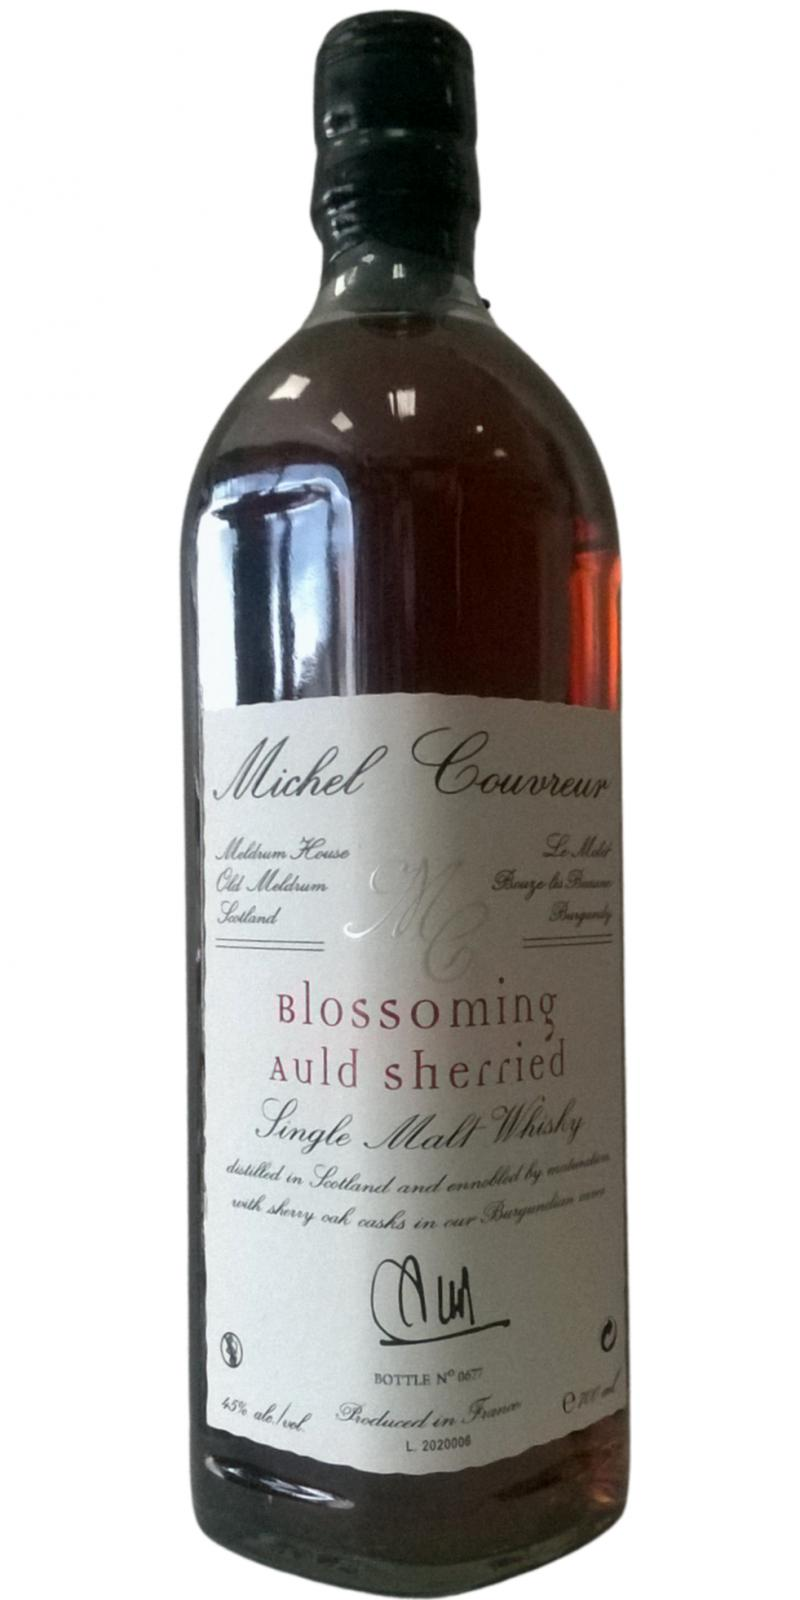 Blossoming Auld Sherried Single Malt Whisky MCo